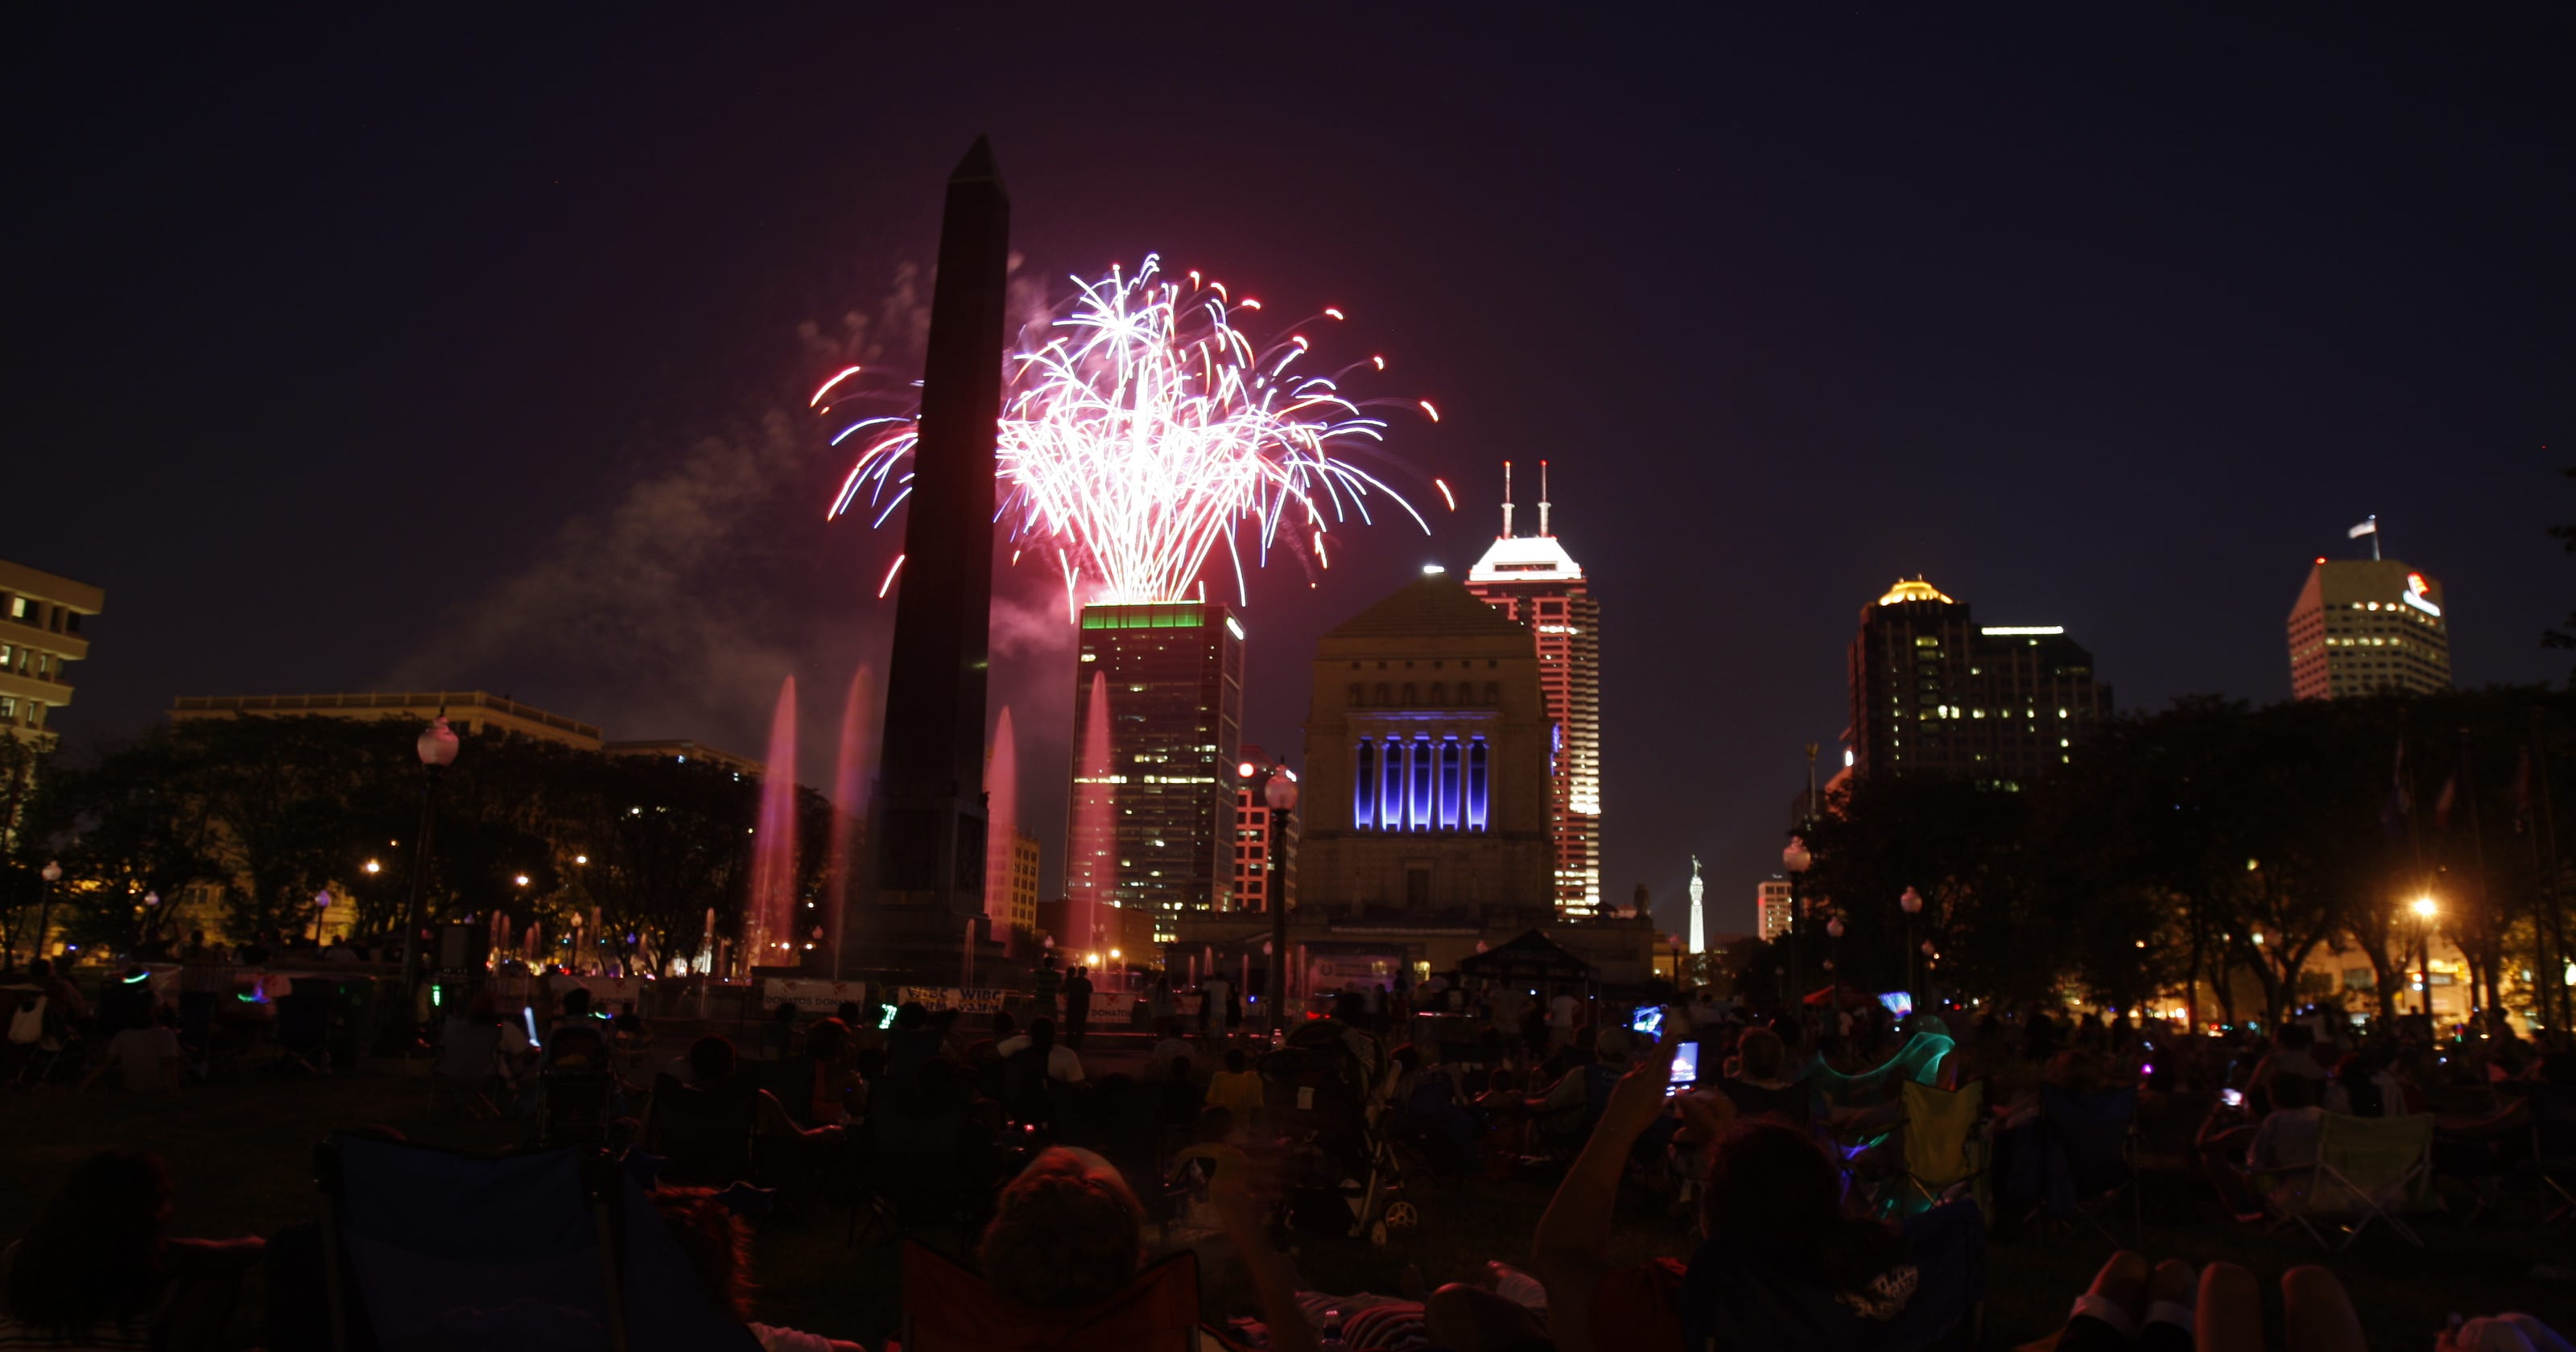 July 4th fireworks 2019: Where to watch near Indianapolis